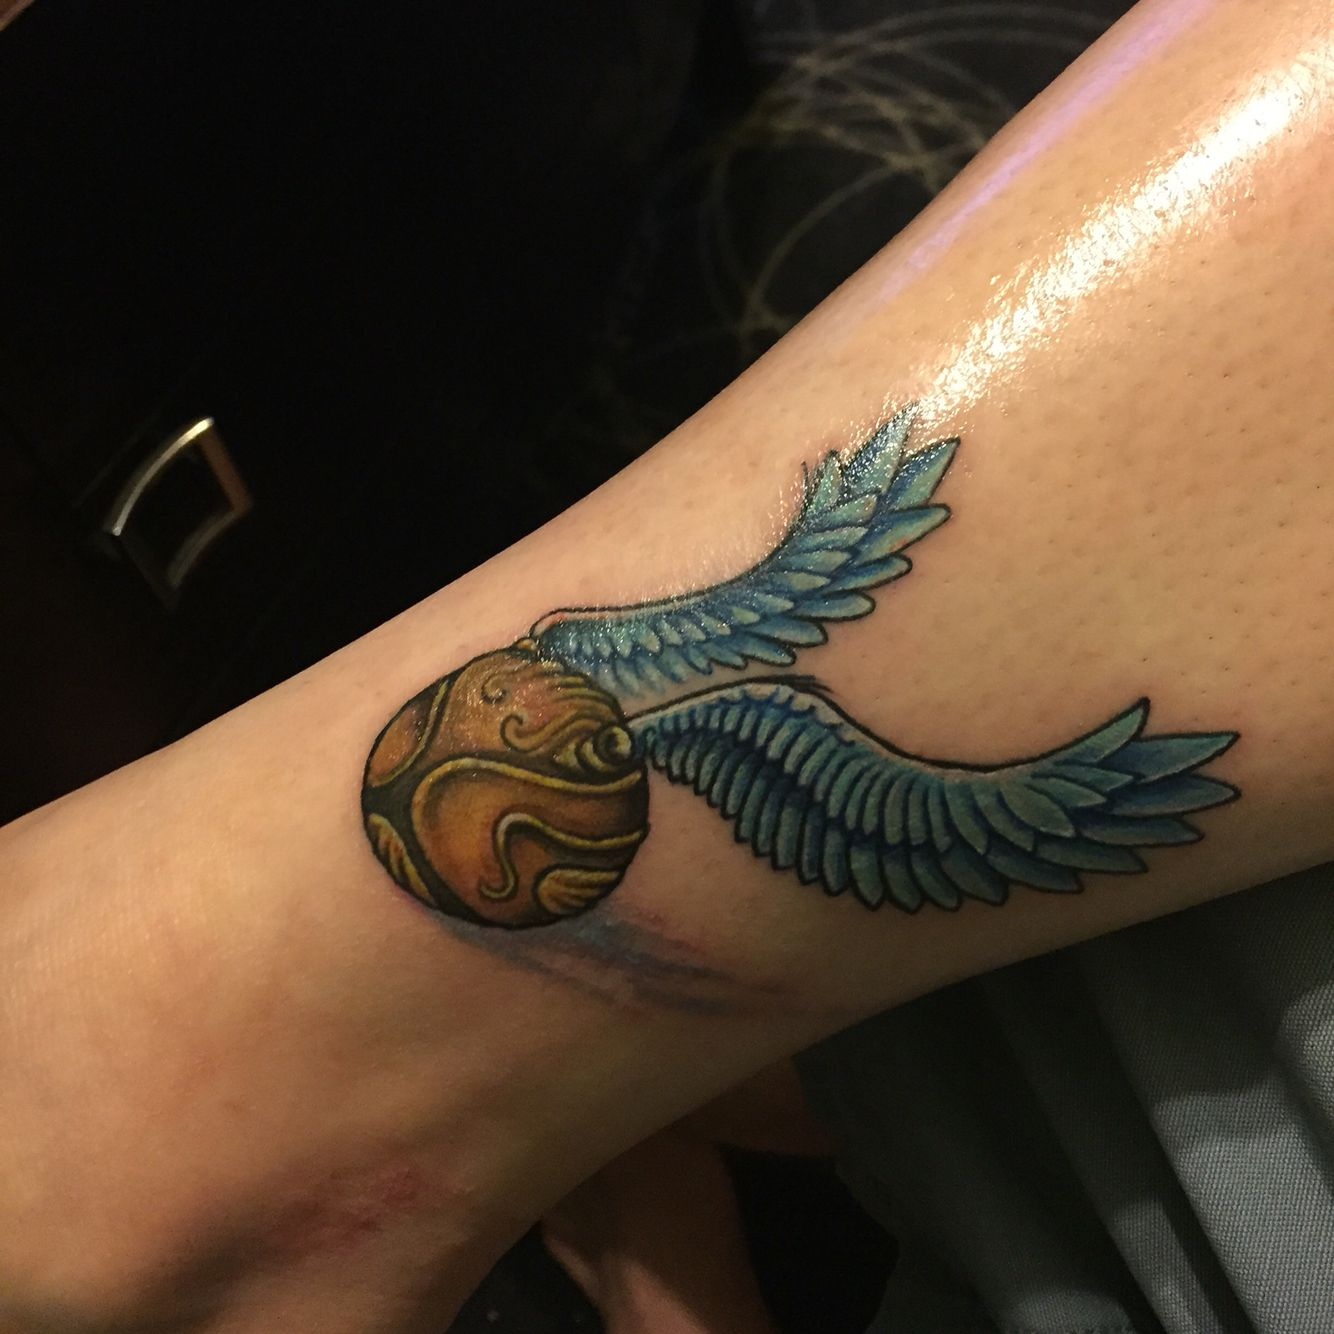 b4e894486c17d Golden snitch tattoo by @meeshac90 at 1001 Troubles Tattoo in Warren ...